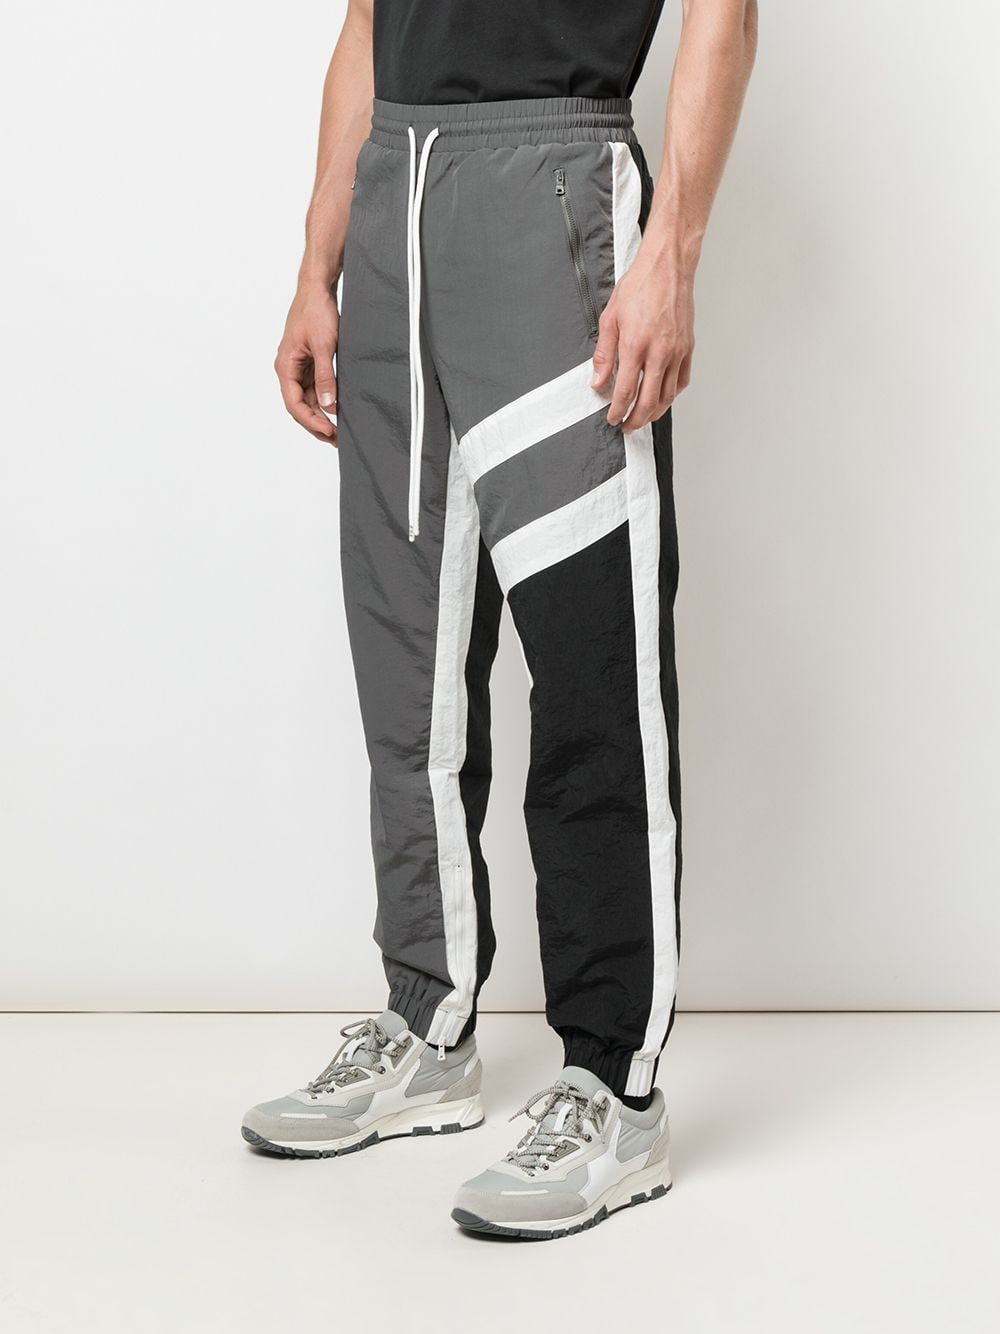 SUPERSTAR WARM UP PANT (CHARCOAL/BLACK)